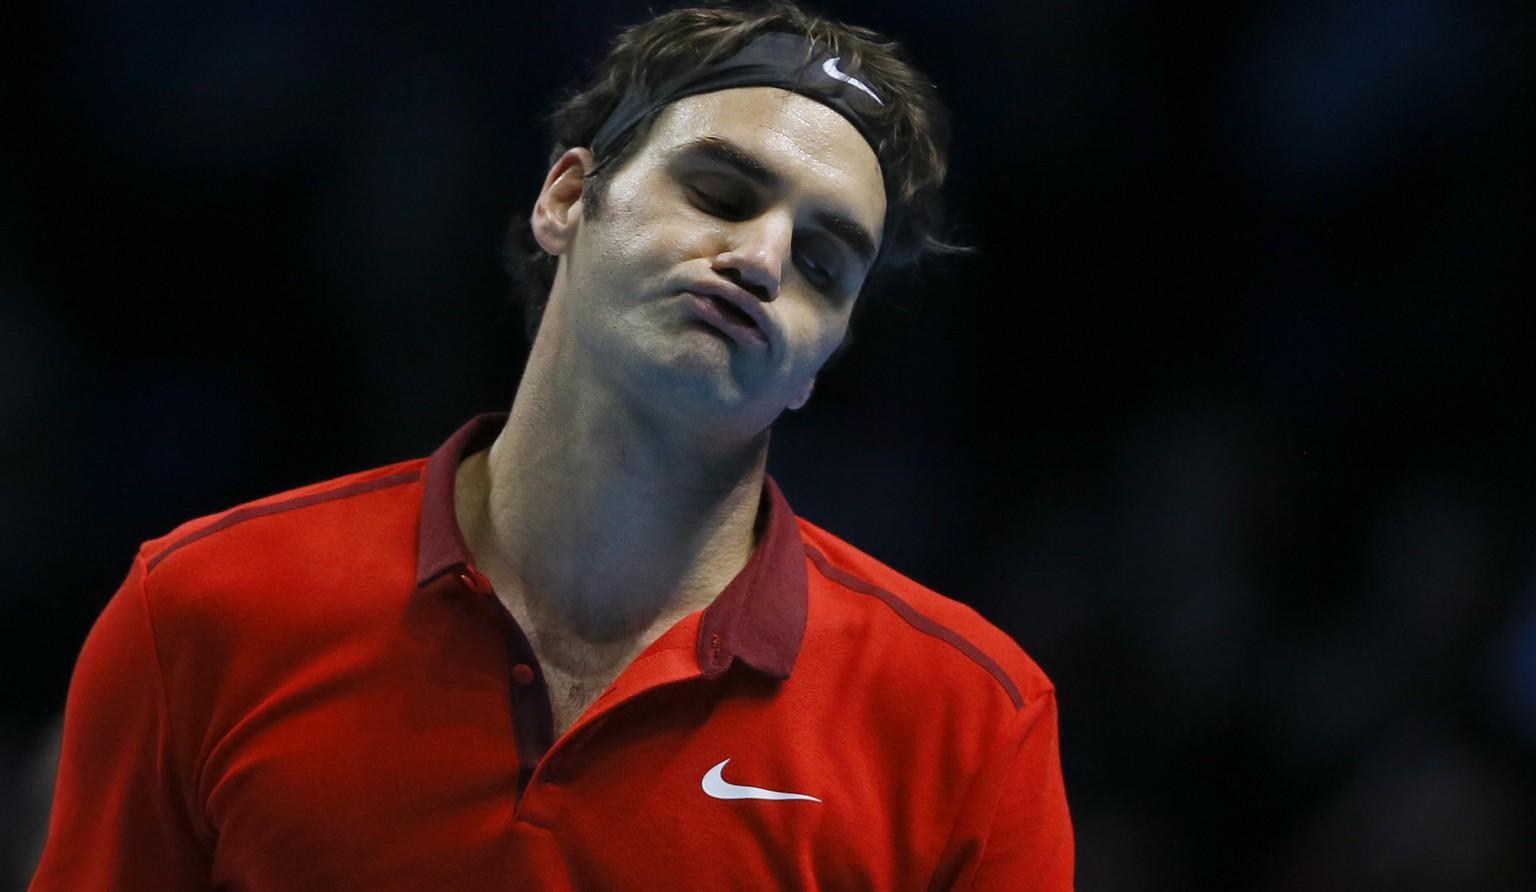 In this photo taken Saturday, Nov. 15, 2014, Switzerland's Roger Federer sighs after losing a point during his singles ATP World Tour Finals semifinal tennis match against Switzerland's Stan Wawrinka at the O2 Arena in London. Roger Federer has withdrawn from the final he was due to play against Serbia's Novak Djokovic on Sunday because of a back injury. (AP Photo/Kirsty Wigglesworth)